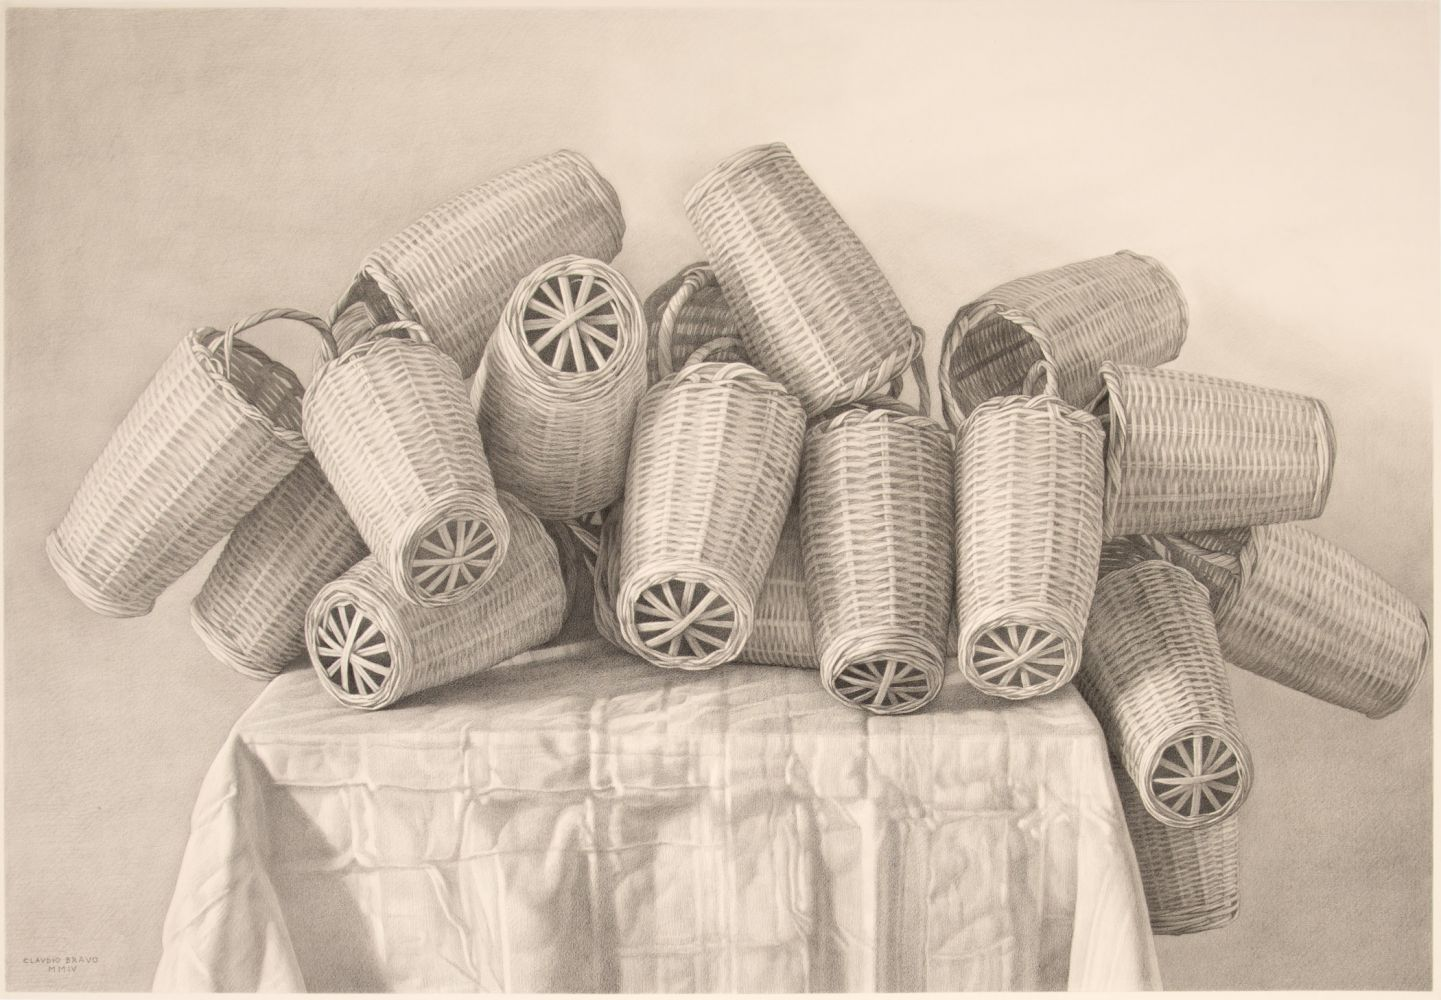 Pencil sketch of wooden baskets atop a table.